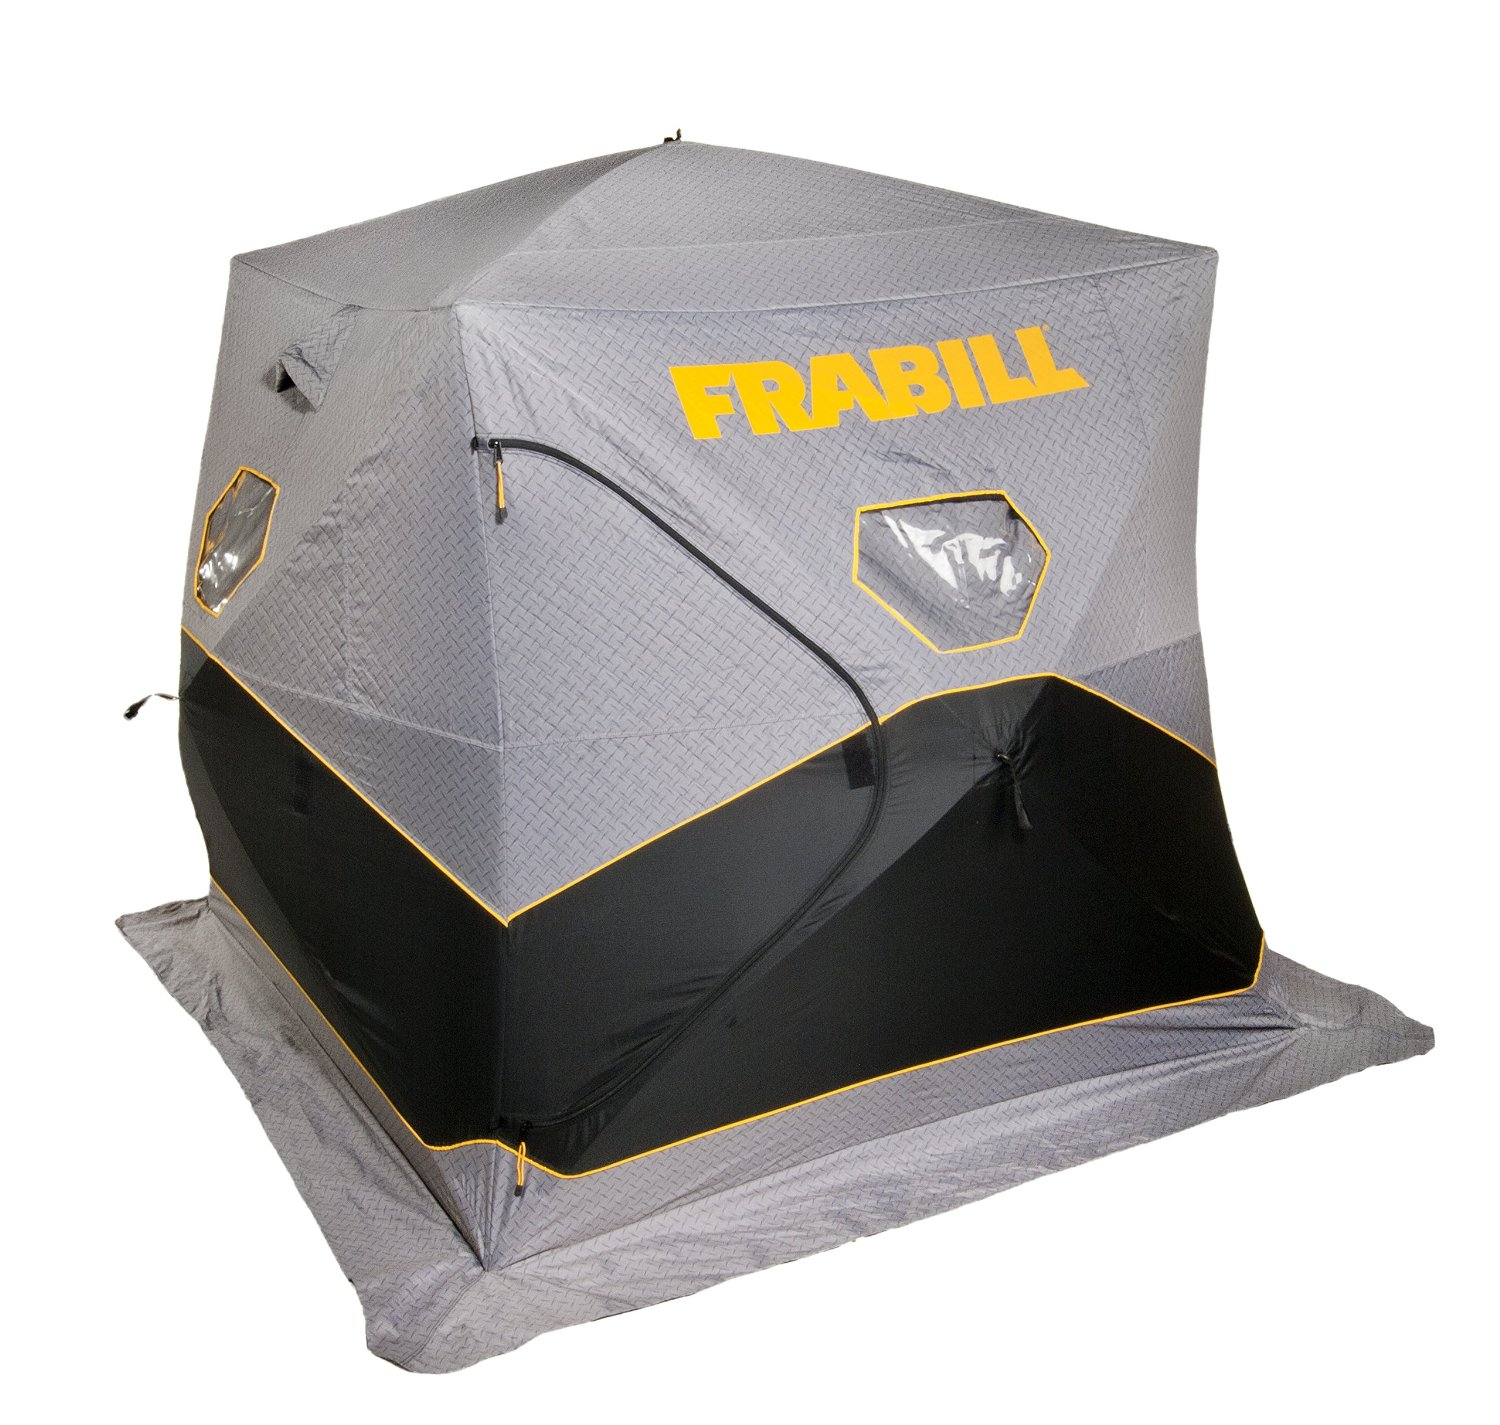 Best ice fishing shelters thrifty outdoors manthrifty for Frabill ice fishing